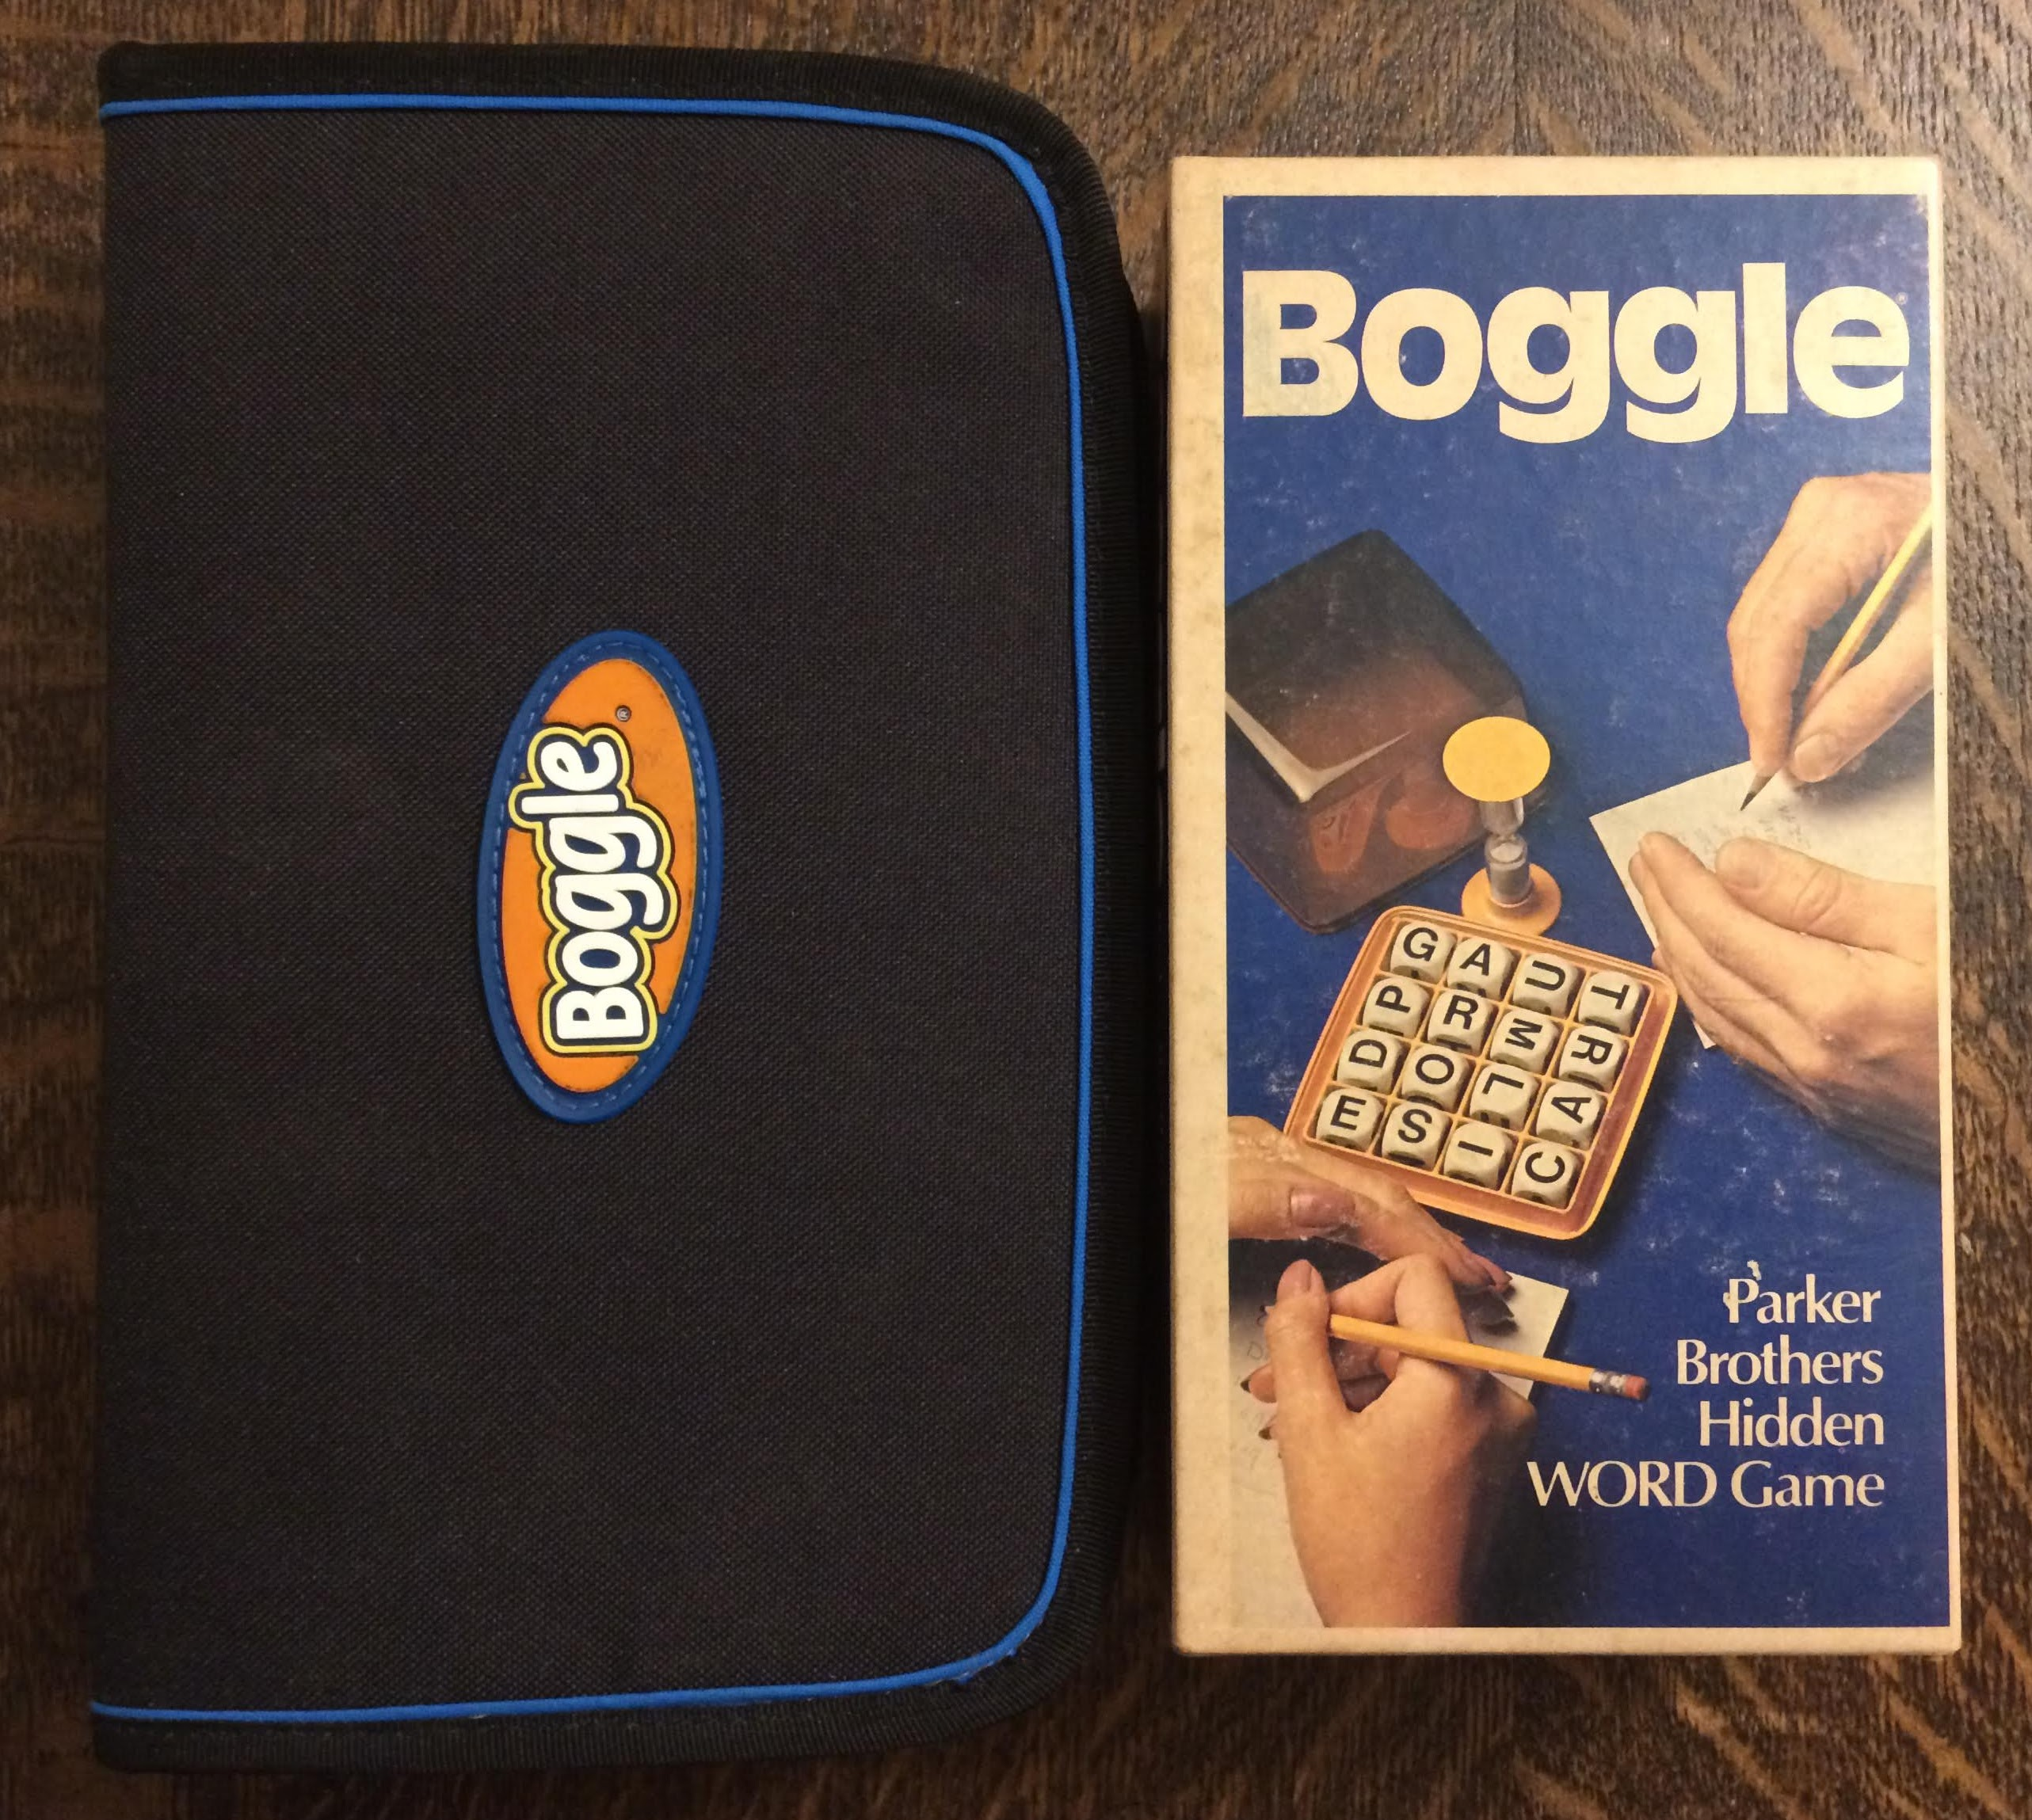 My Mind is Boggled: Which Edition of Boggle Should I Keep?